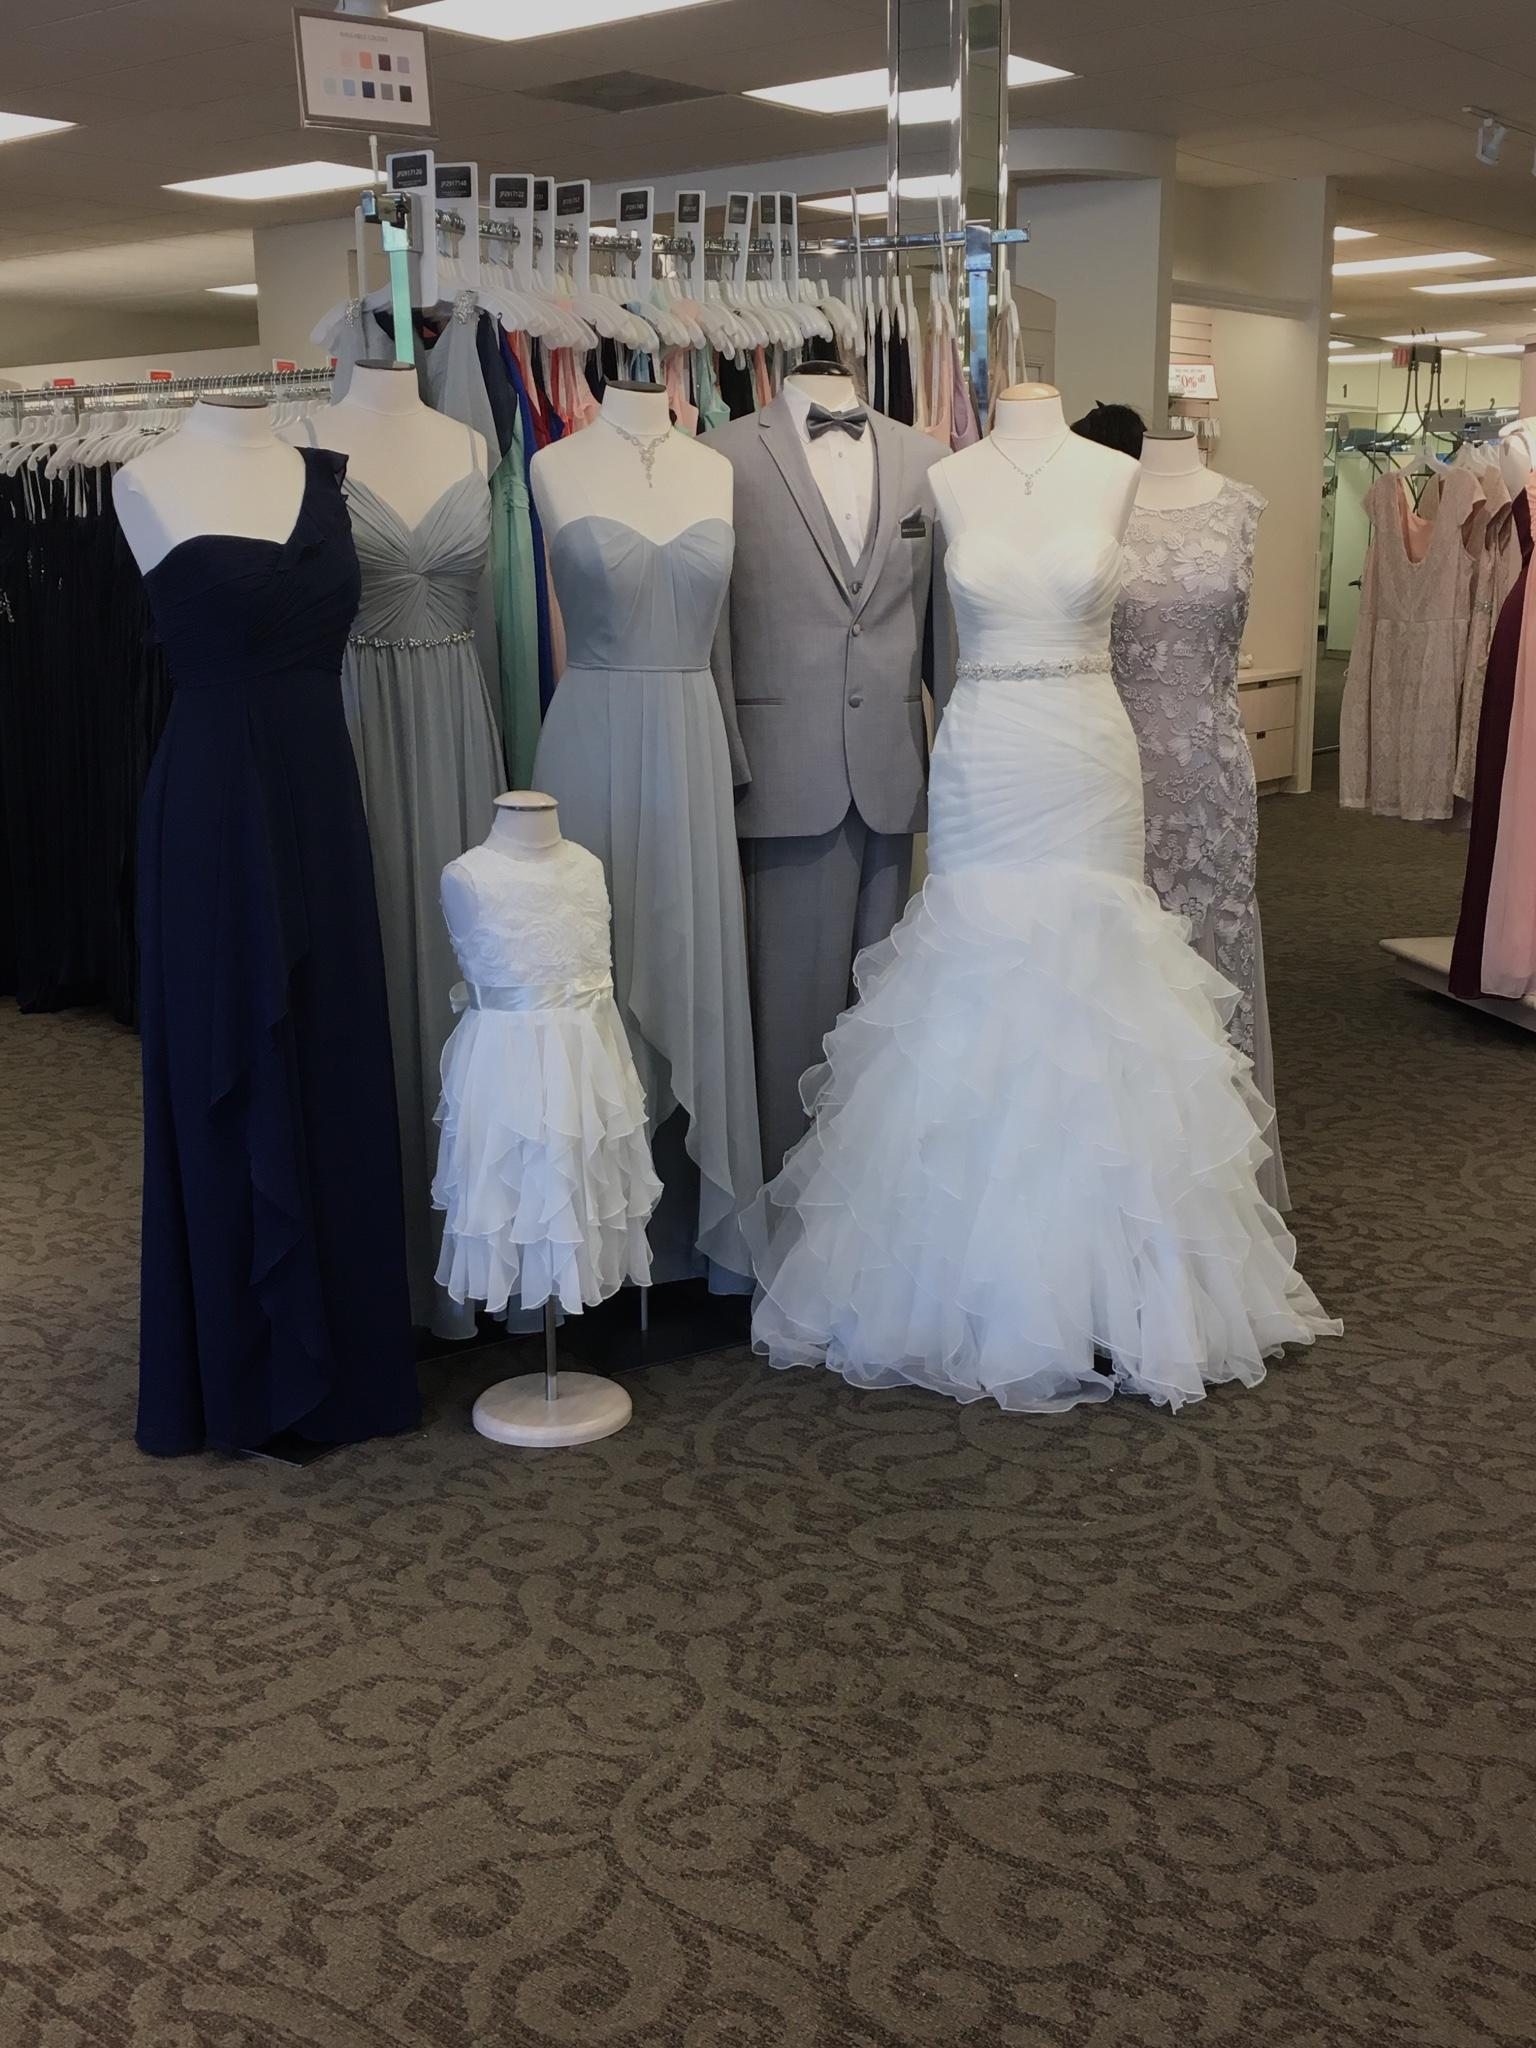 David S Bridal 4503 W Kennedy Blvd Tampa Fl Clothing